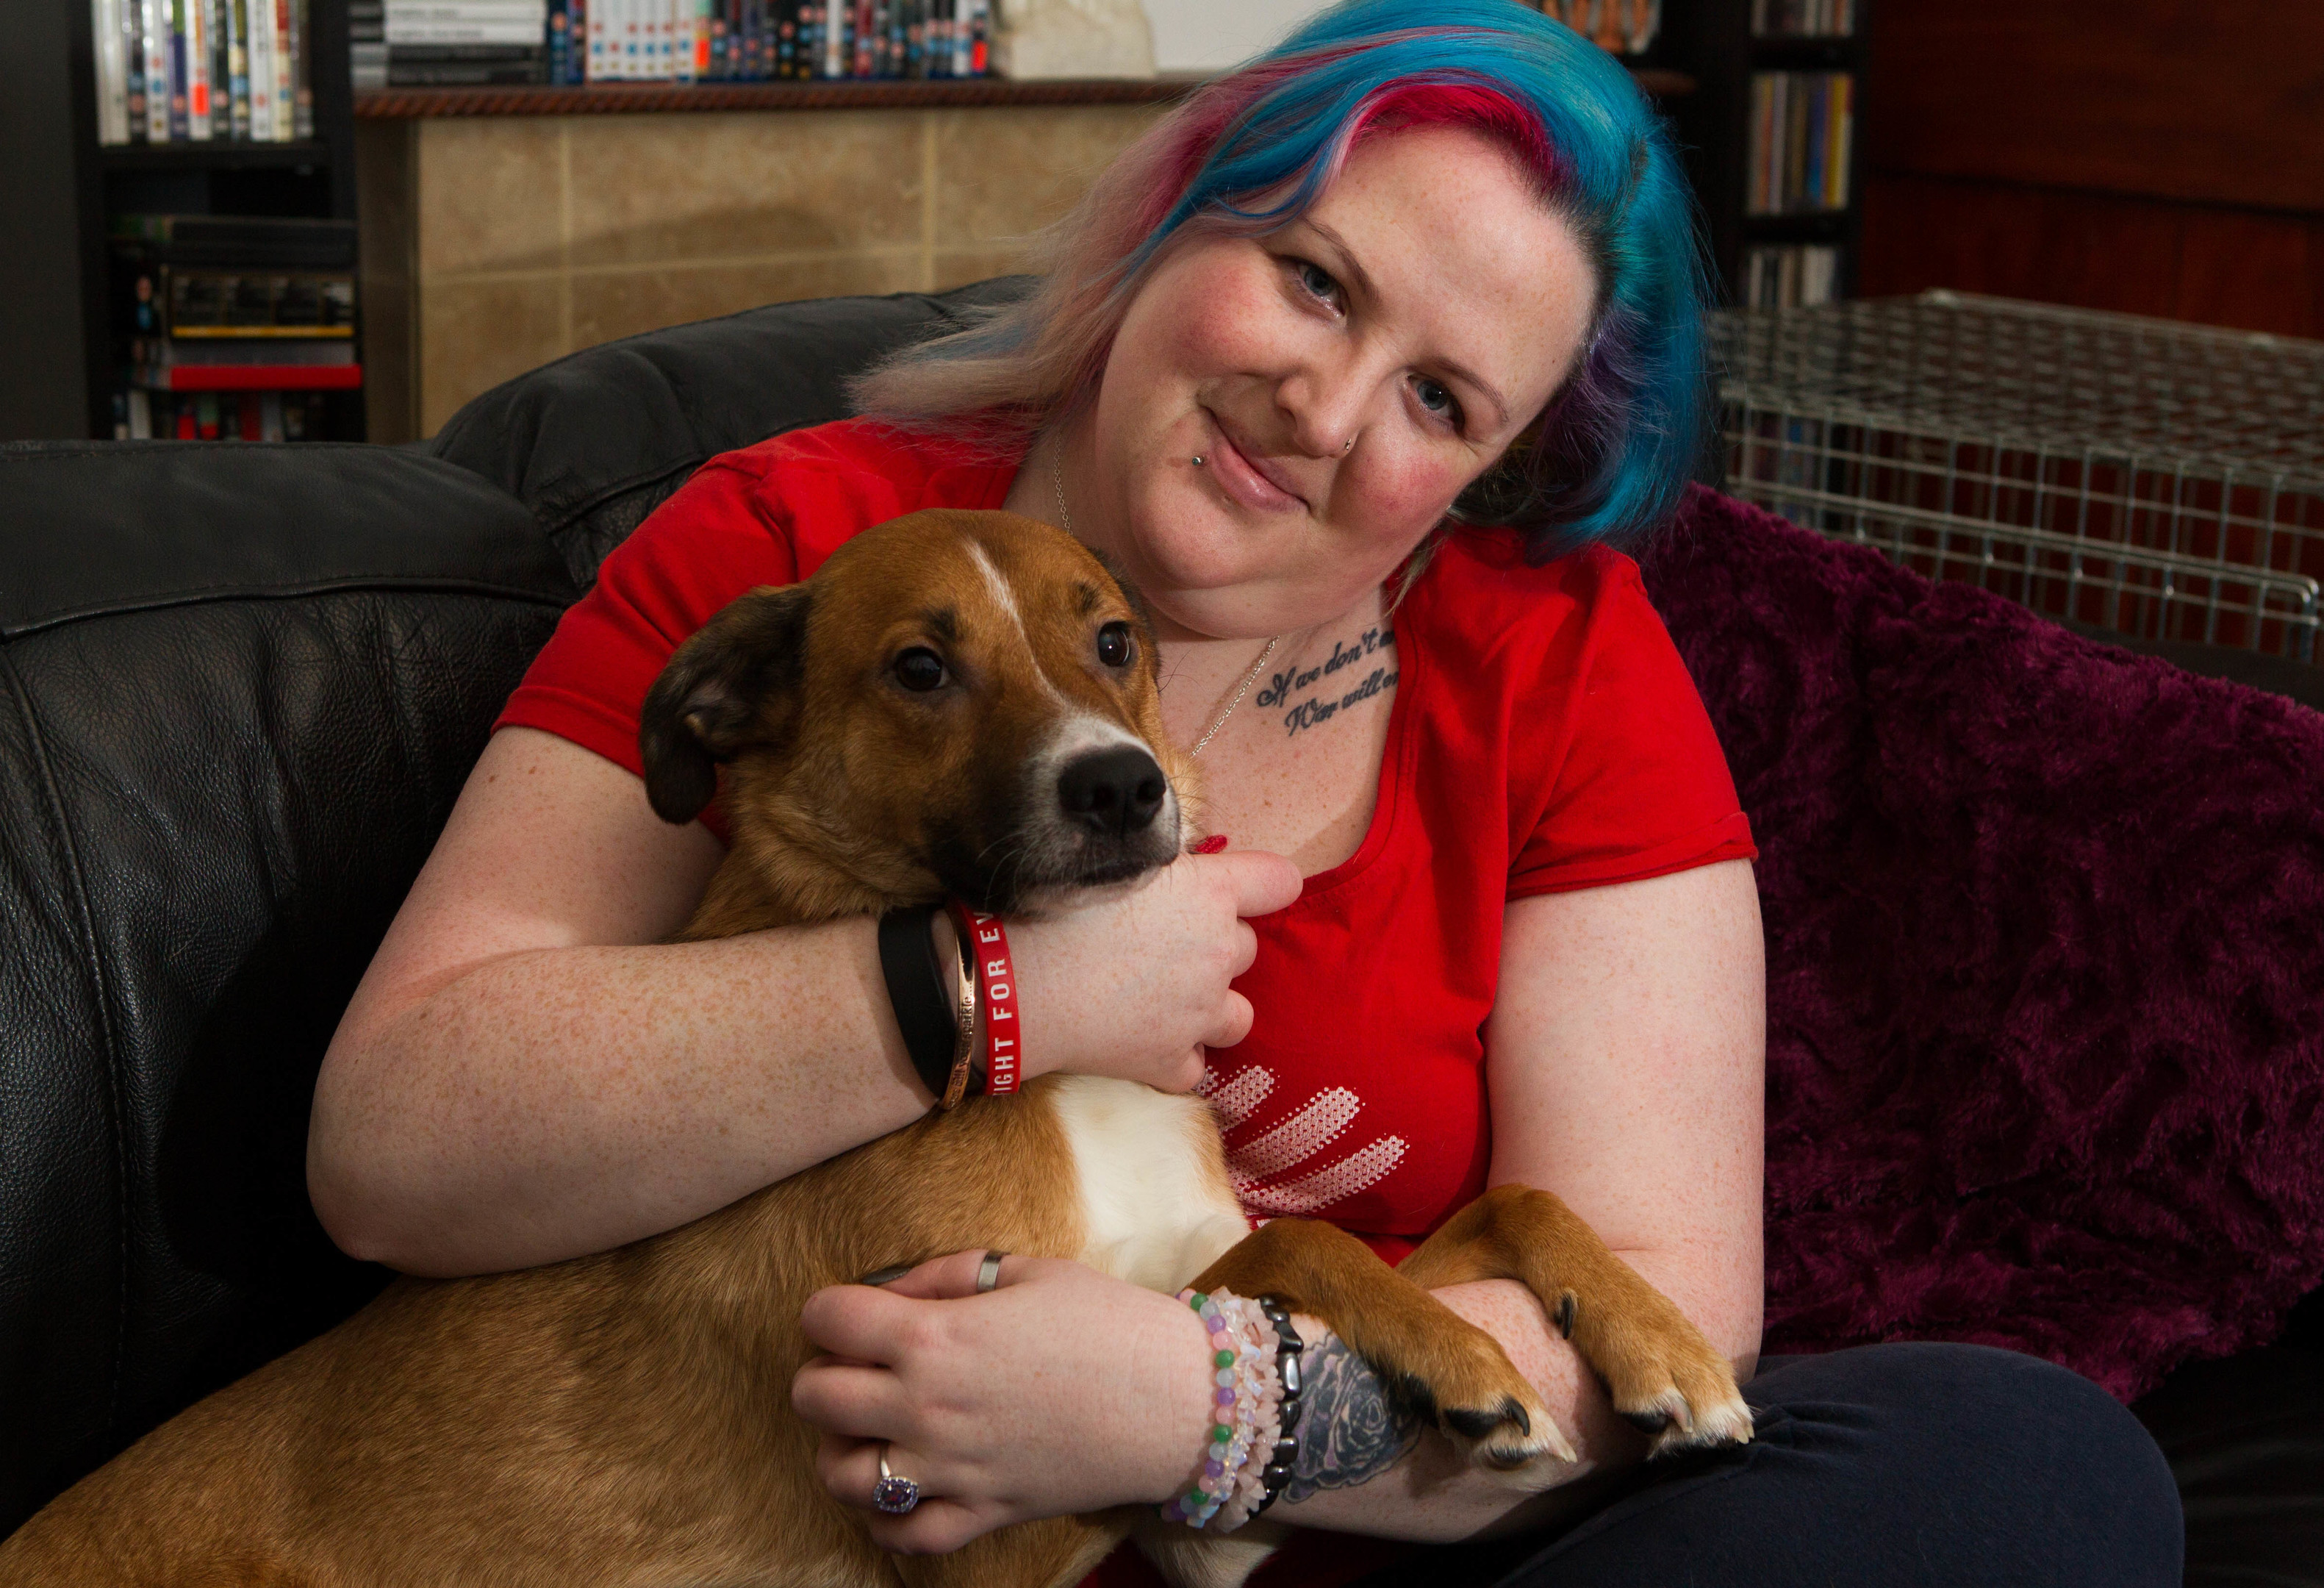 Pamela Spence and her dog Beau (Chris Austin / DC Thomson)